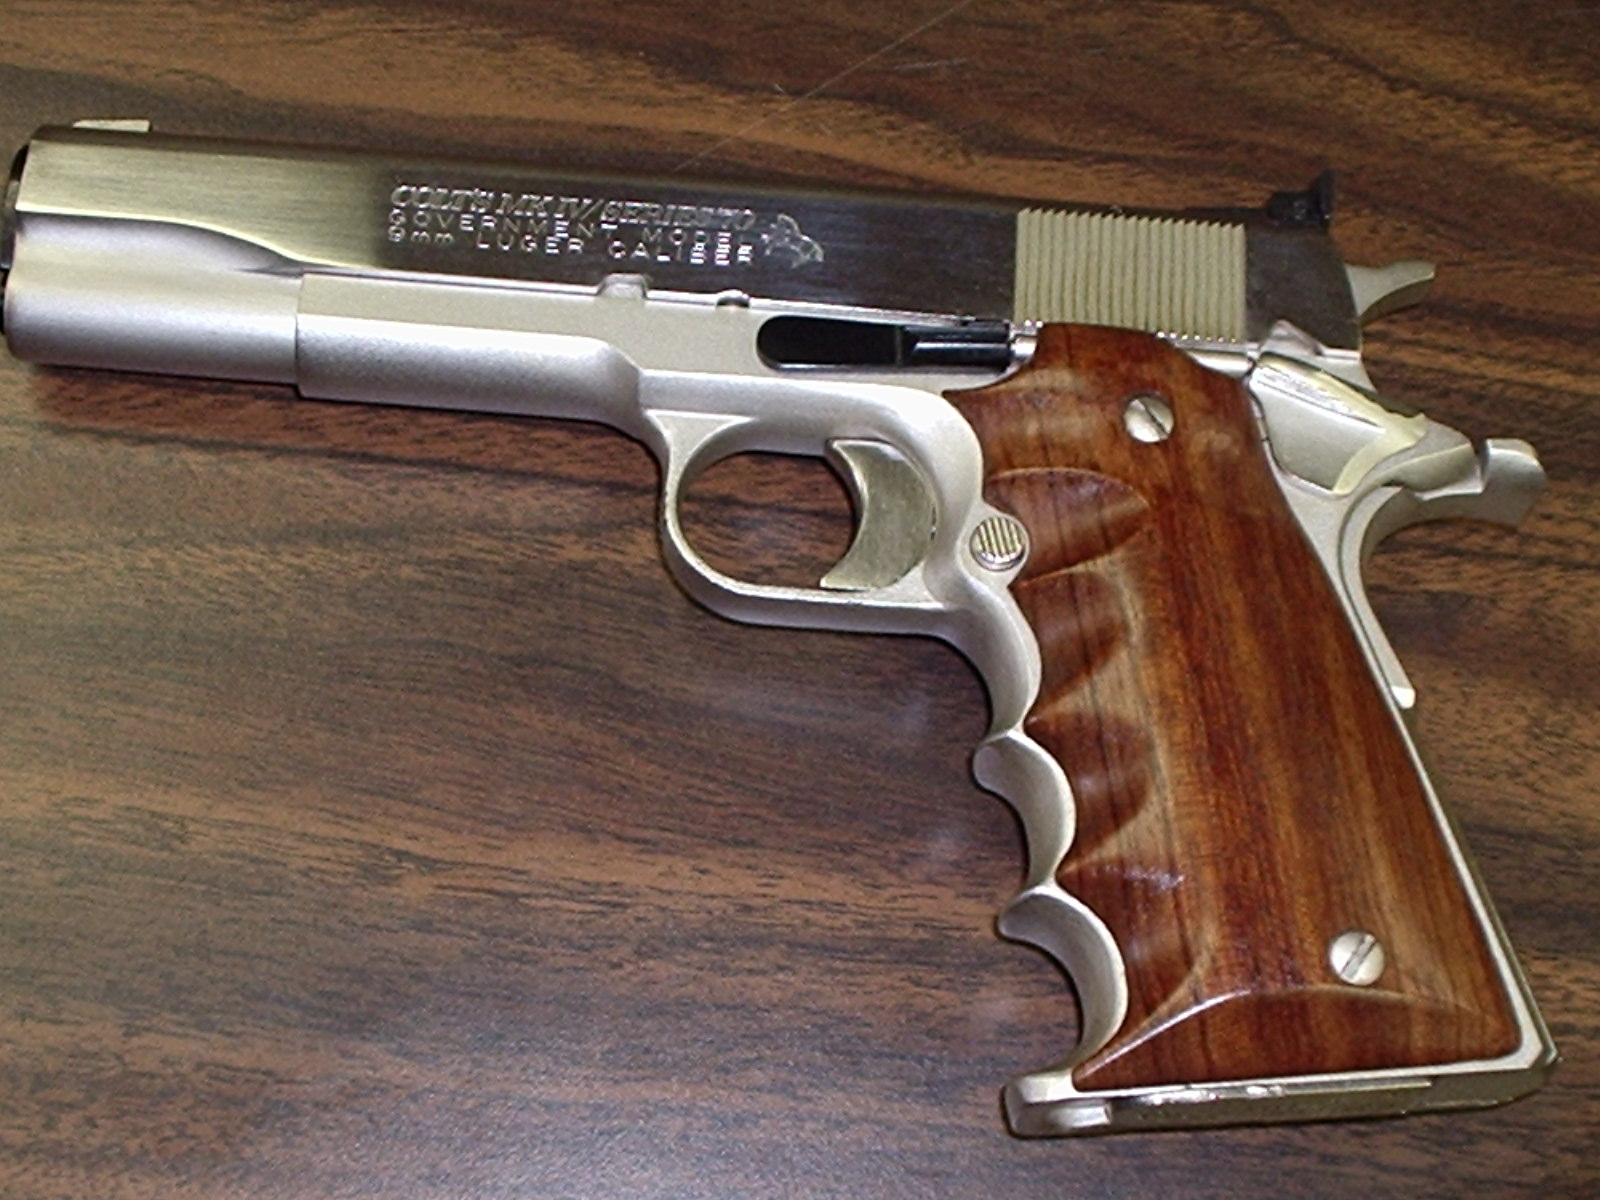 Colt 45 Magnum Guns http://www.backcountryjournal.com/customcoltpython357.htm